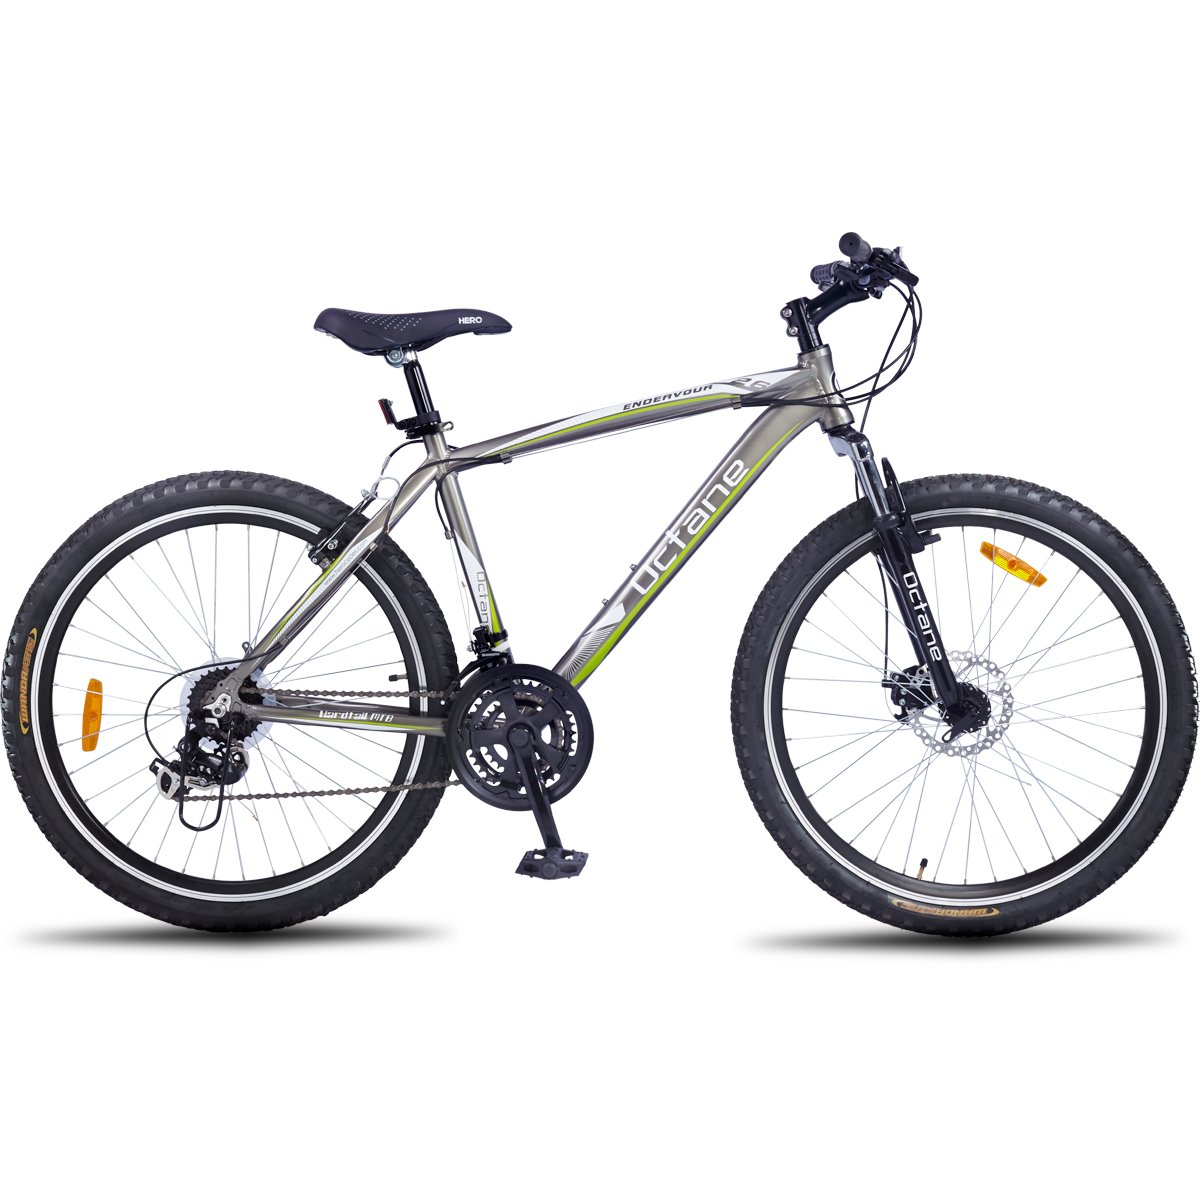 Hero octane 26t endevour 21 speed adult cycle